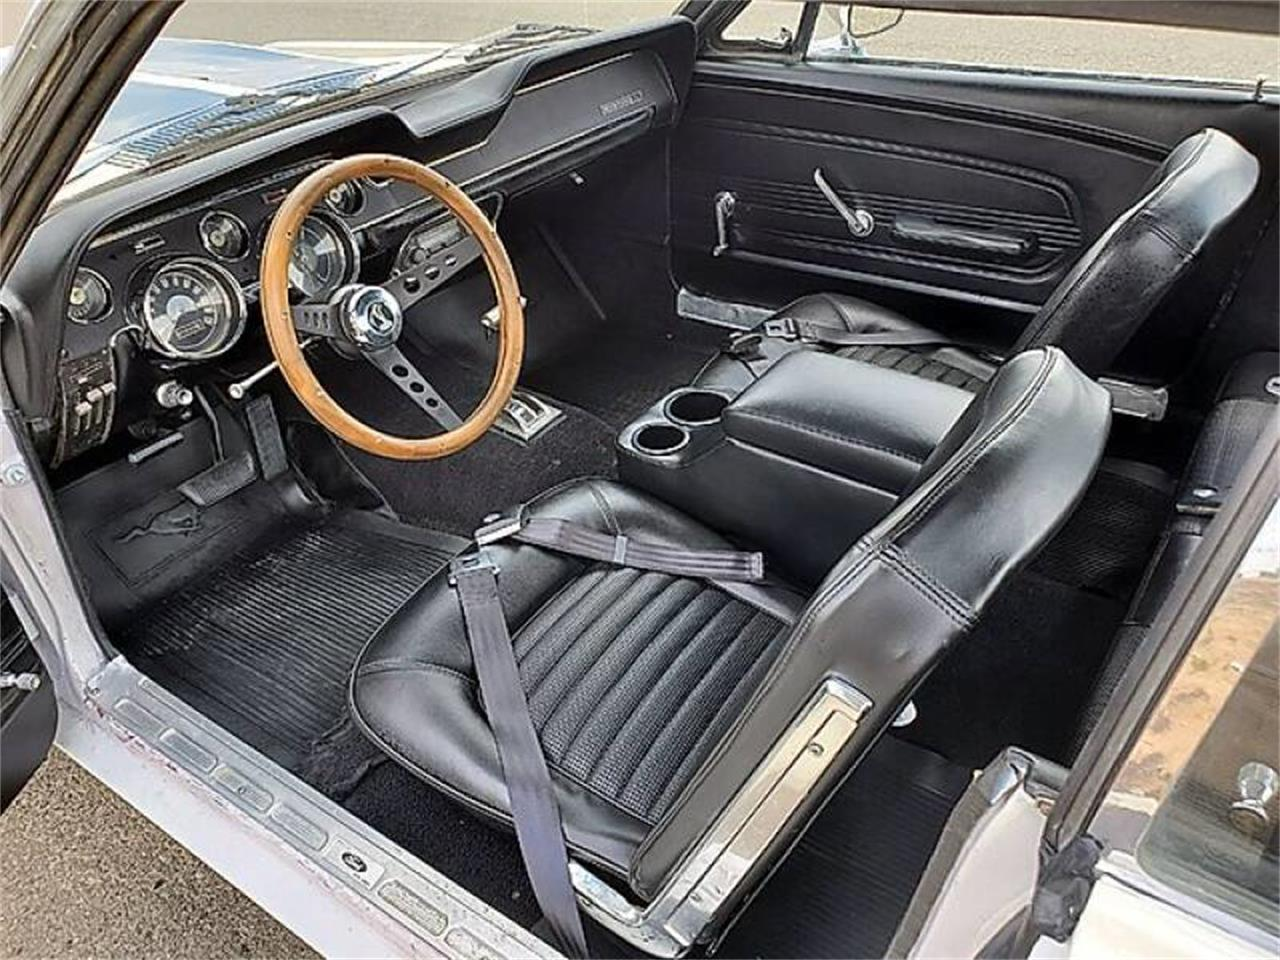 Ford Mustang Gt 350 1967 prix tout compris